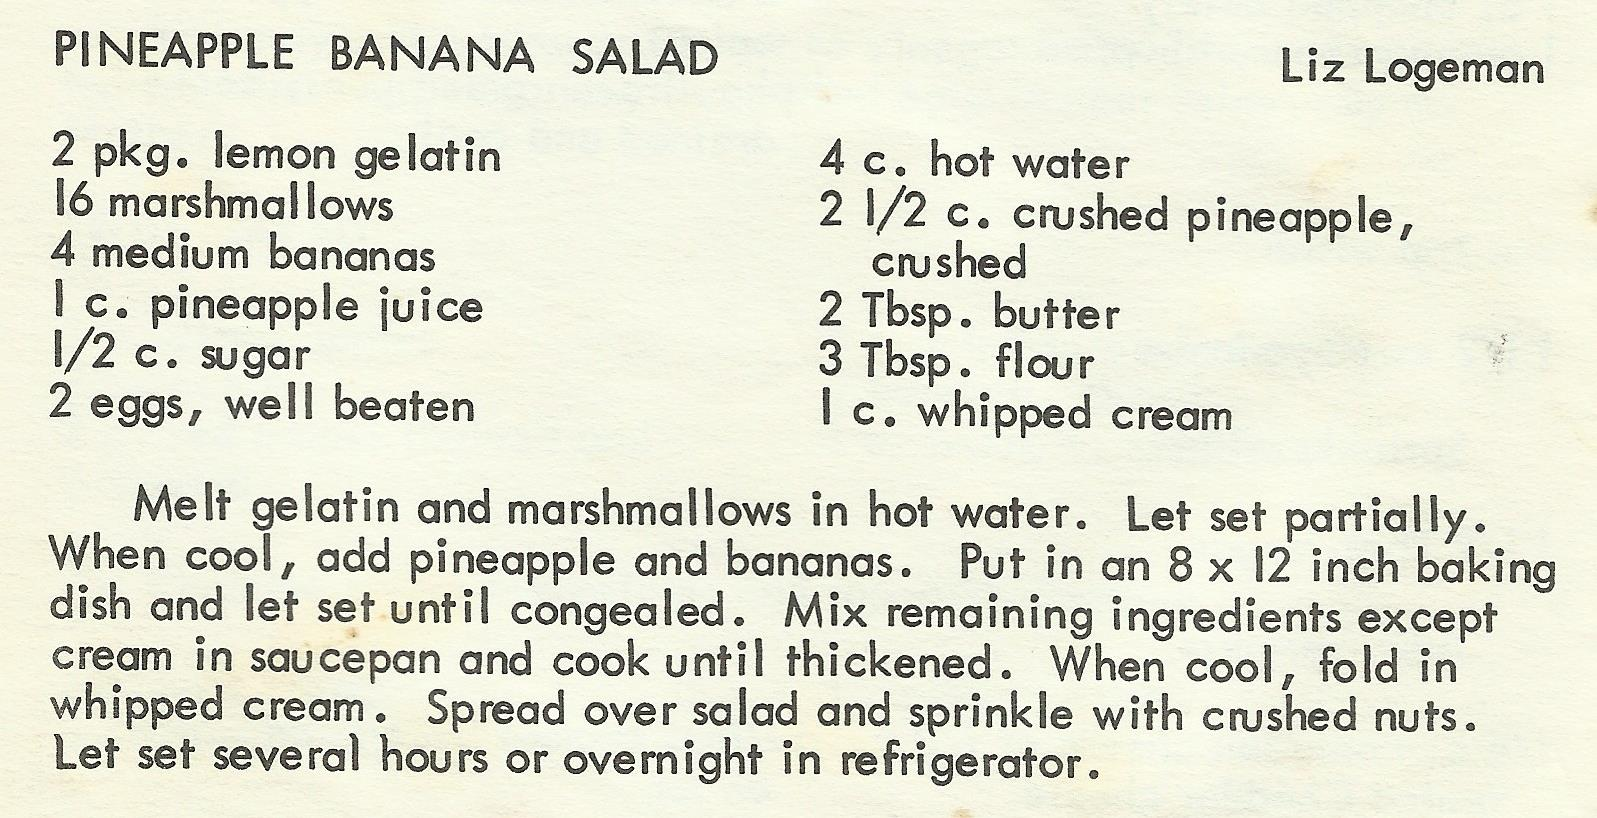 Pineapple Banana Salad